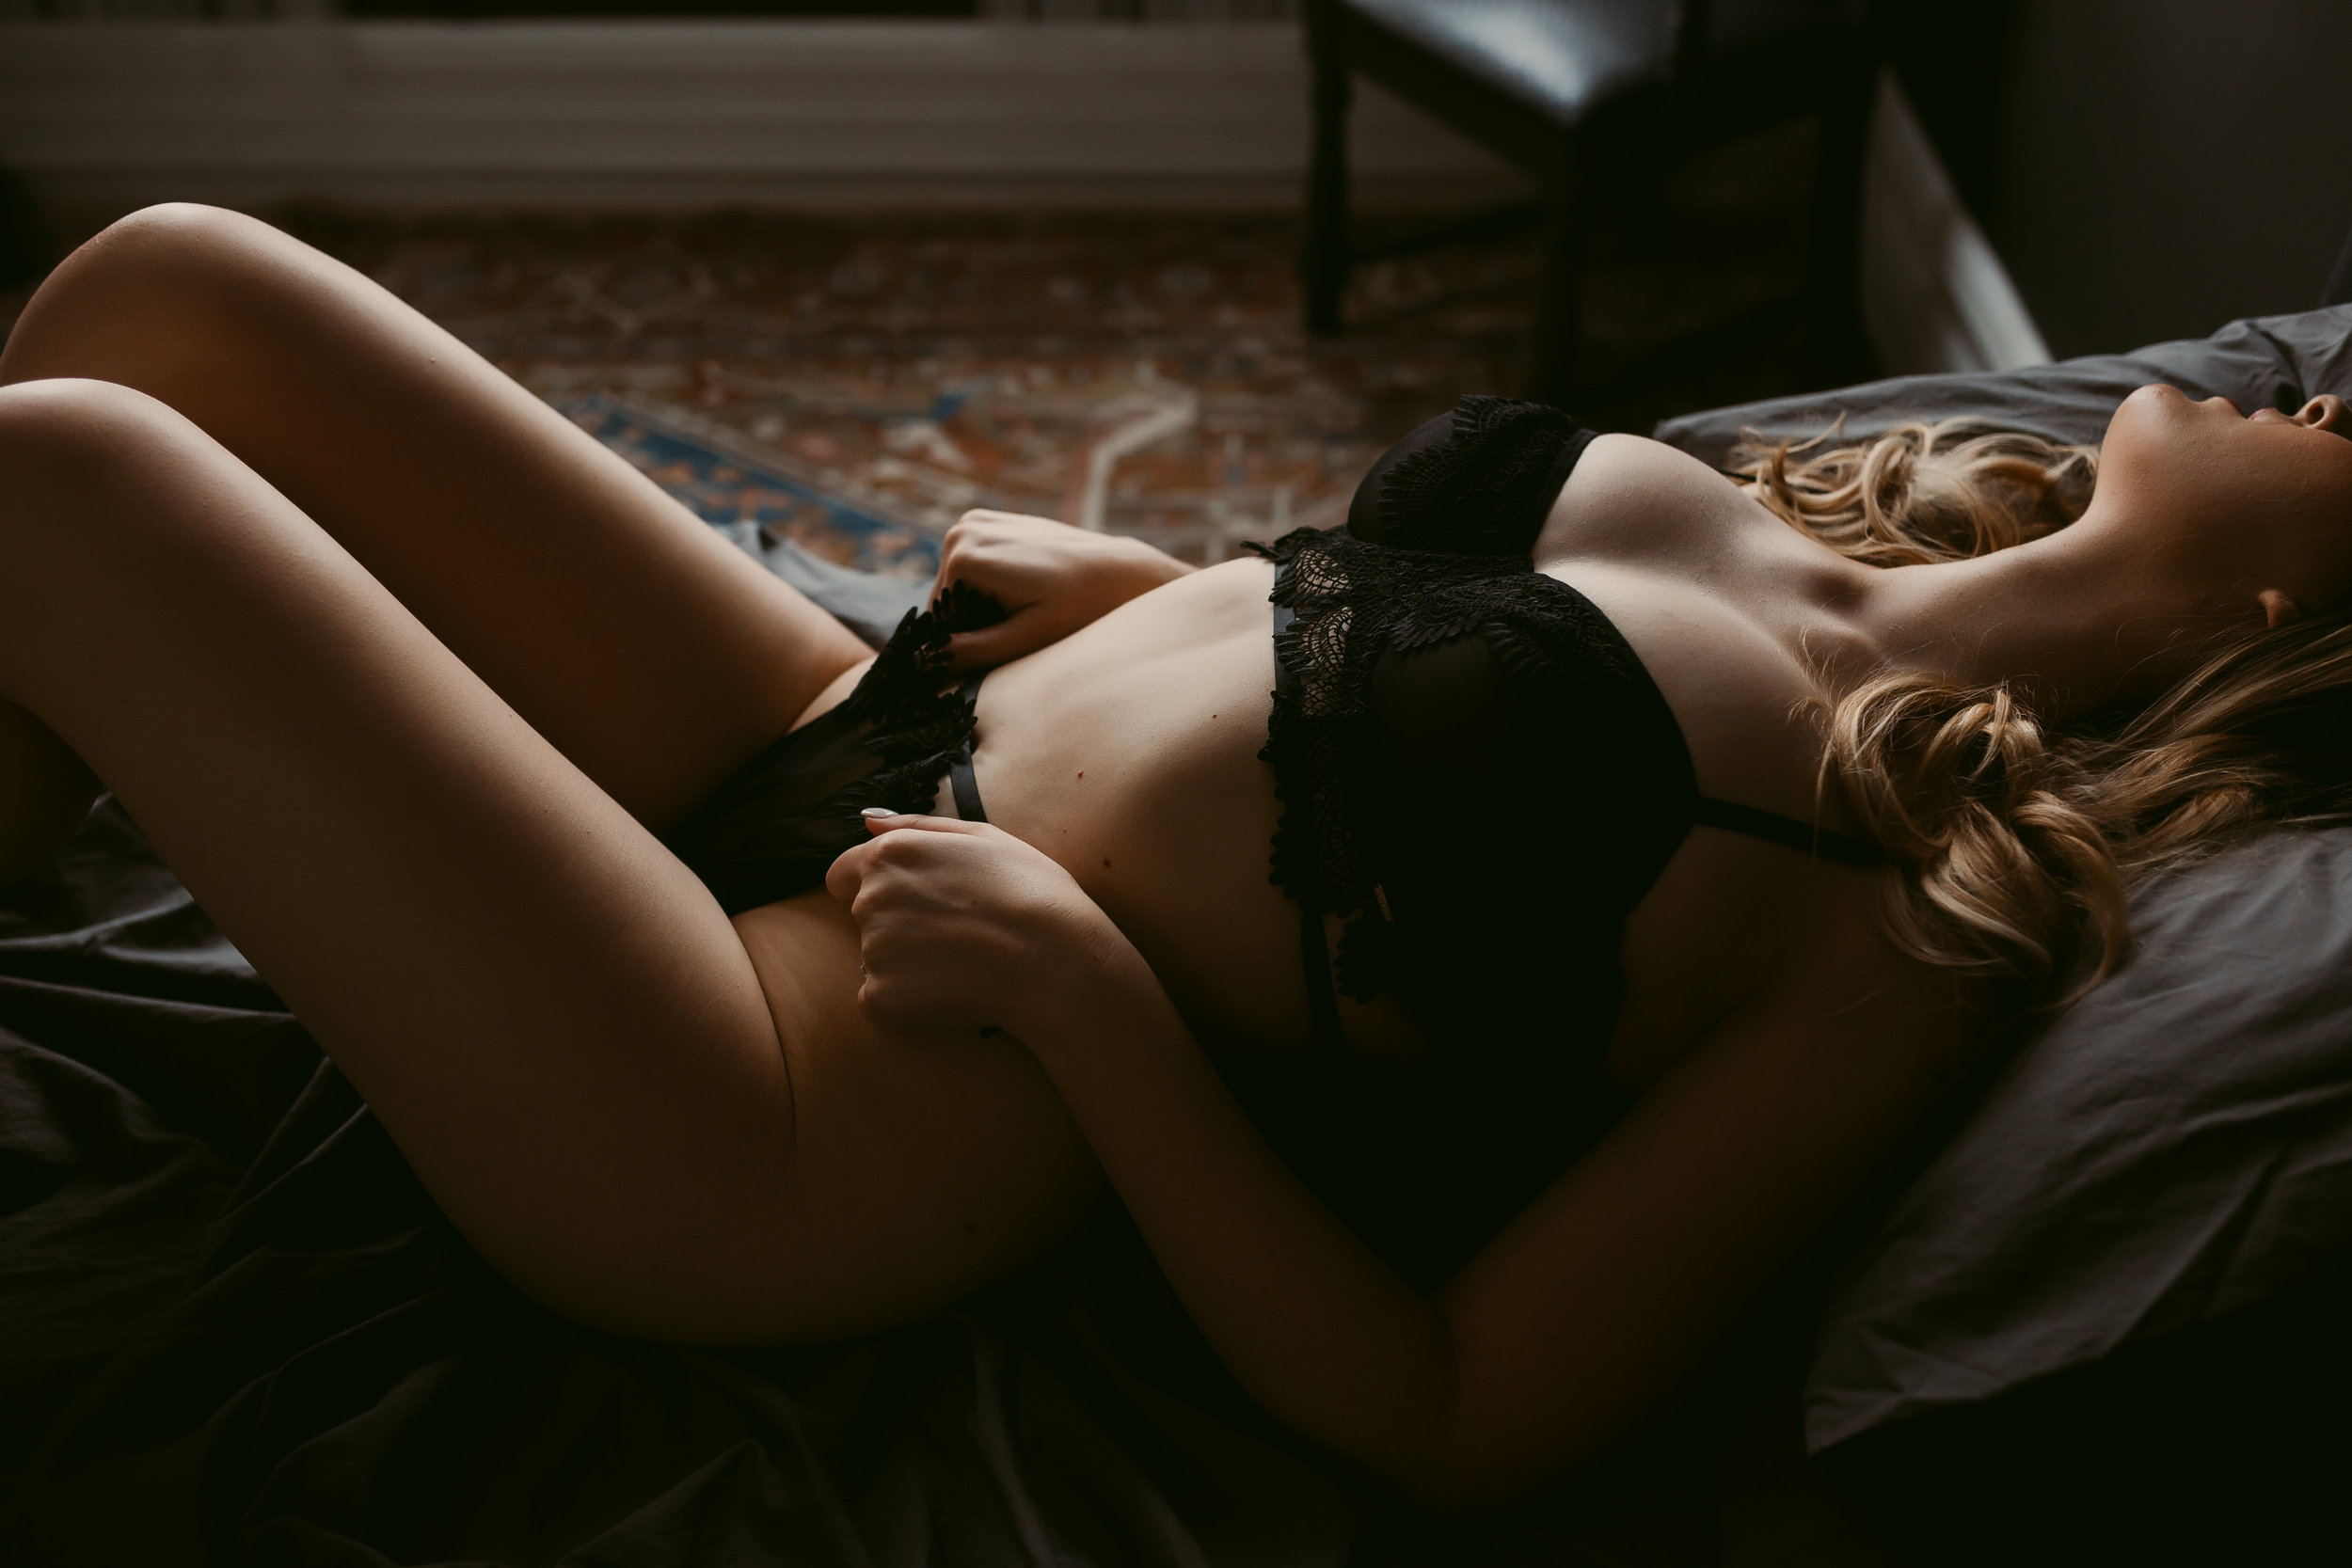 Michigan_Boudoir_Photography_Butterfly_Boudoir015.JPG